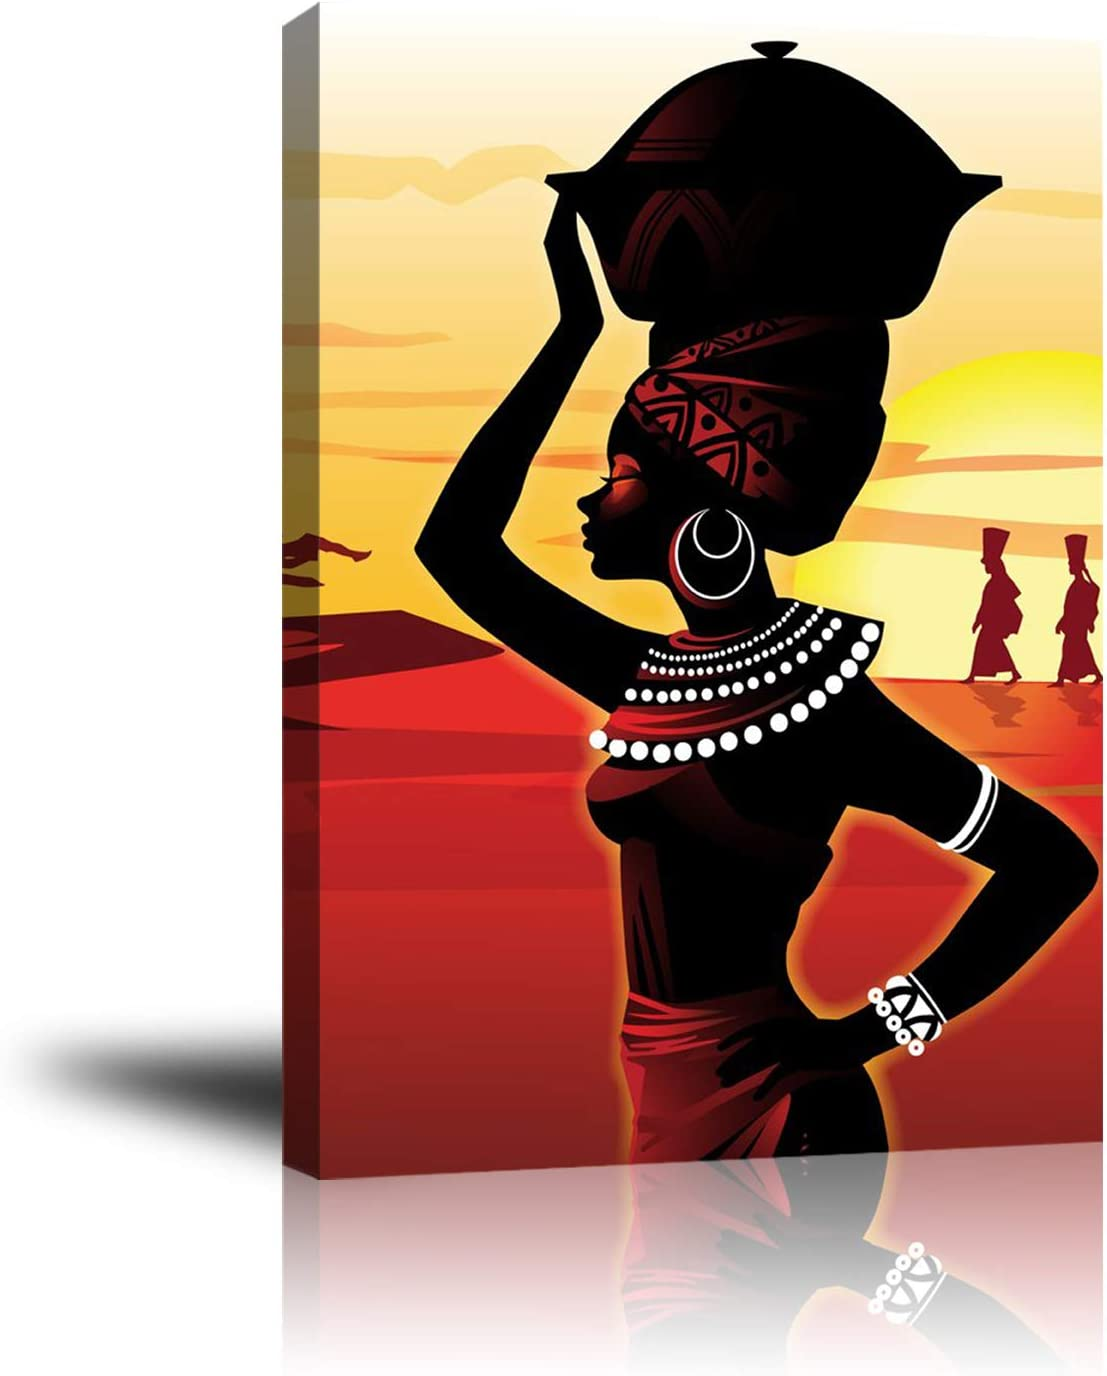 """Premium Canvas Wall Art, Prints African Woman Decor Photo Paintings, Decorative Artwork for Bedroom Home Office Framed Ready to Hang 16""""x 20"""""""